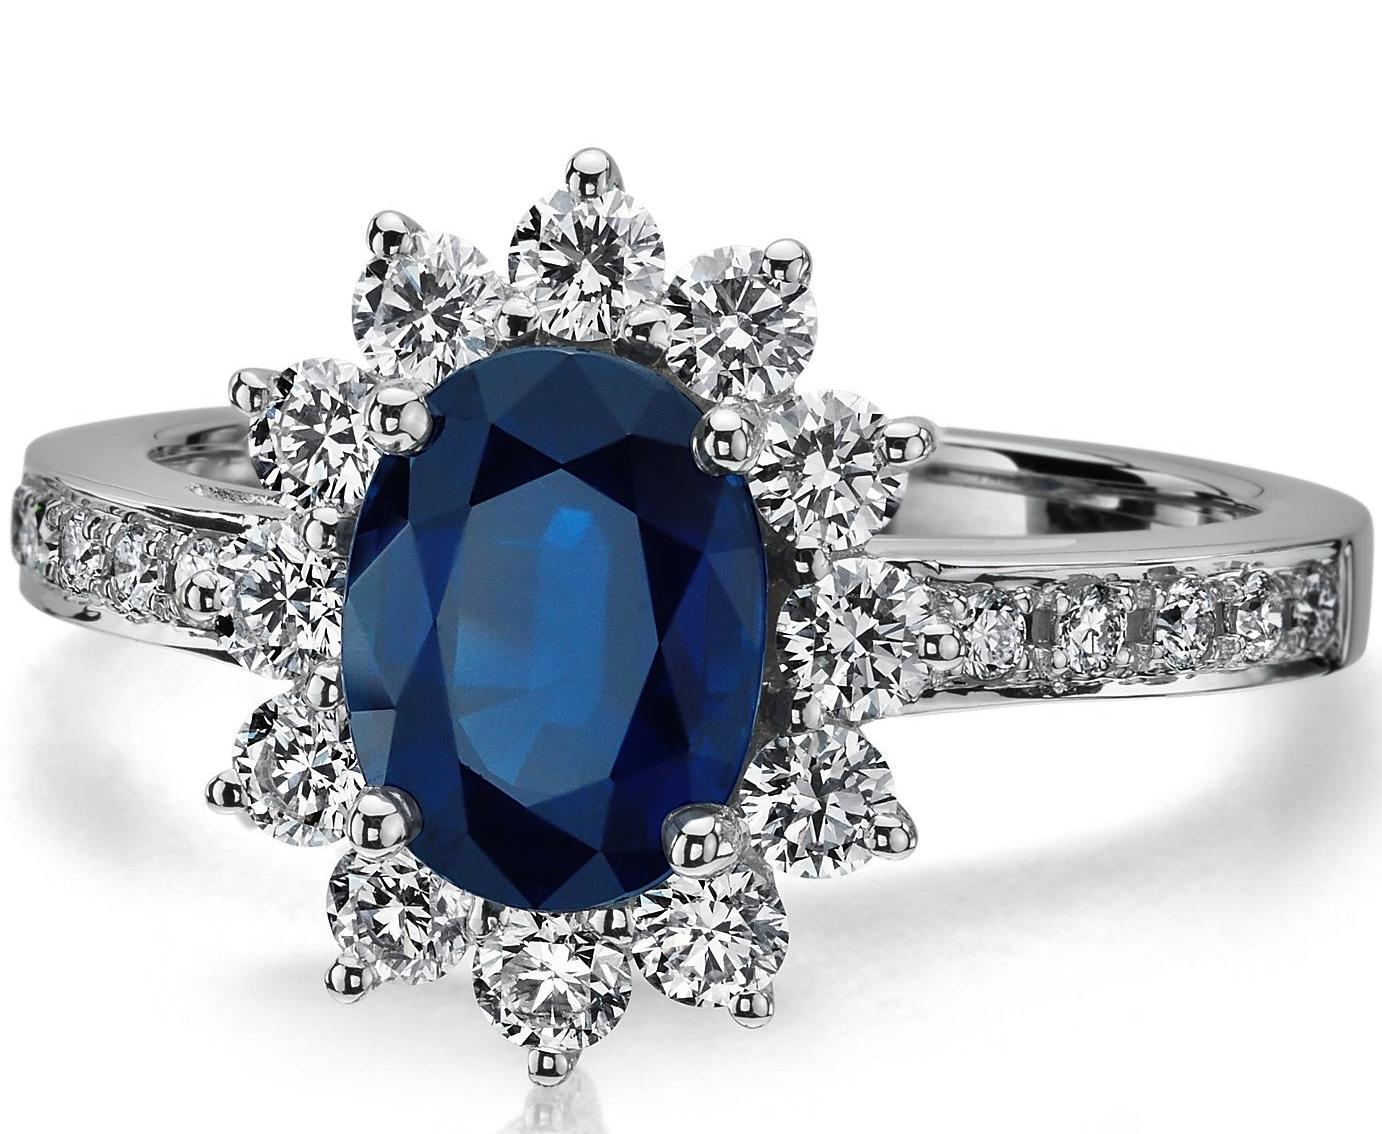 blue sapphire european engagement rings from mdc diamonds nyc. Black Bedroom Furniture Sets. Home Design Ideas